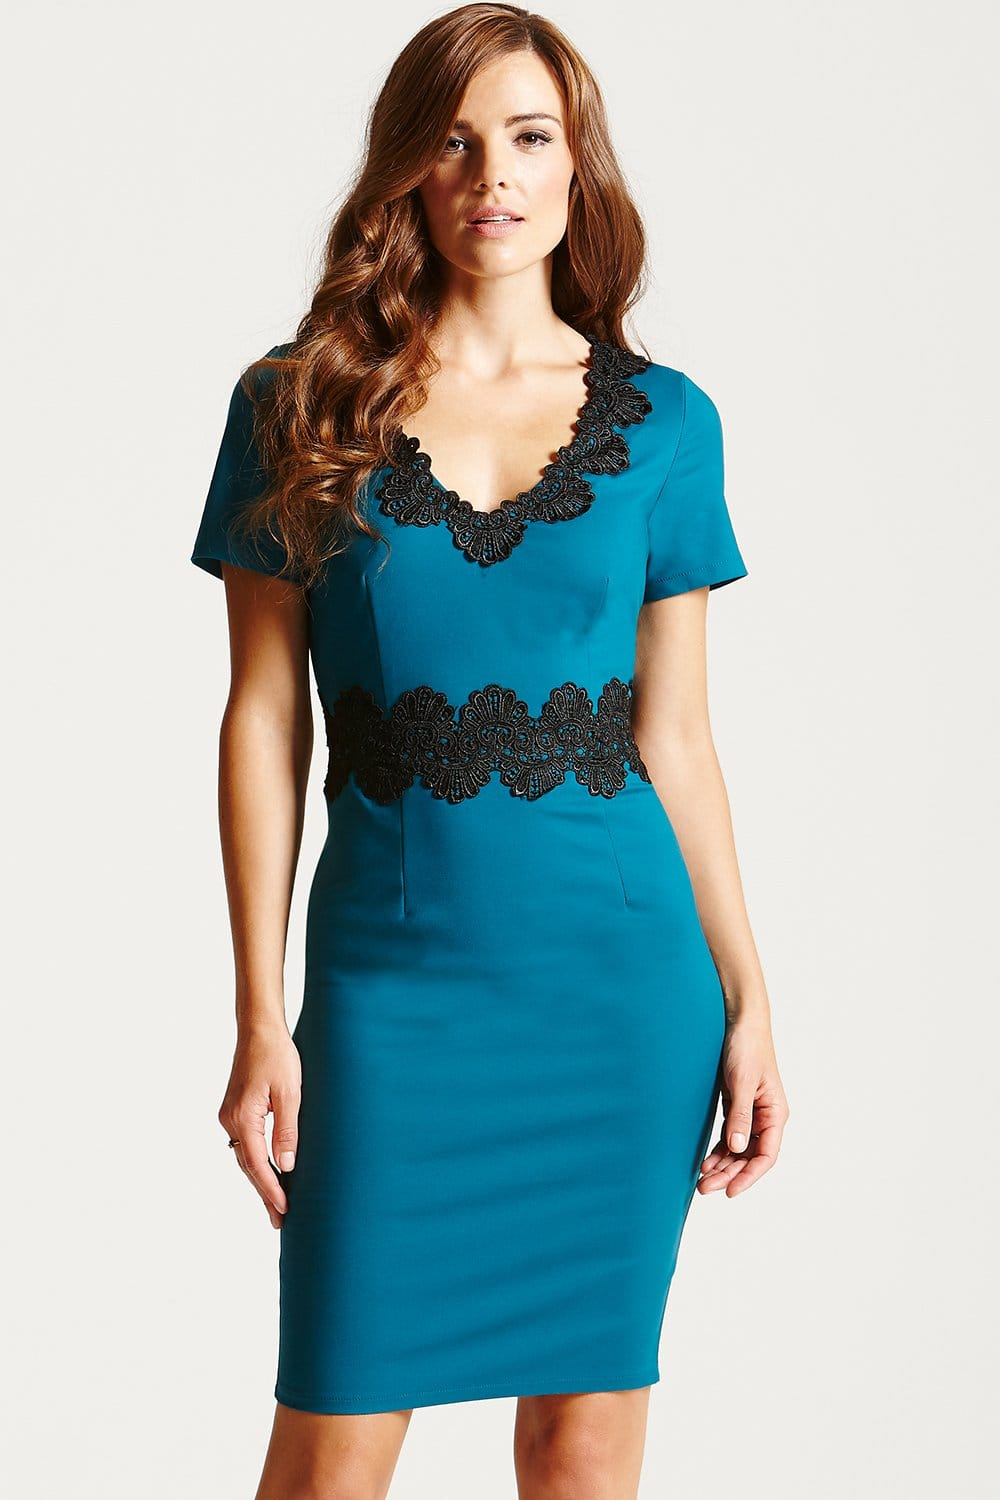 Paper Dolls Teal and Black Lace Trim Wiggle Dress